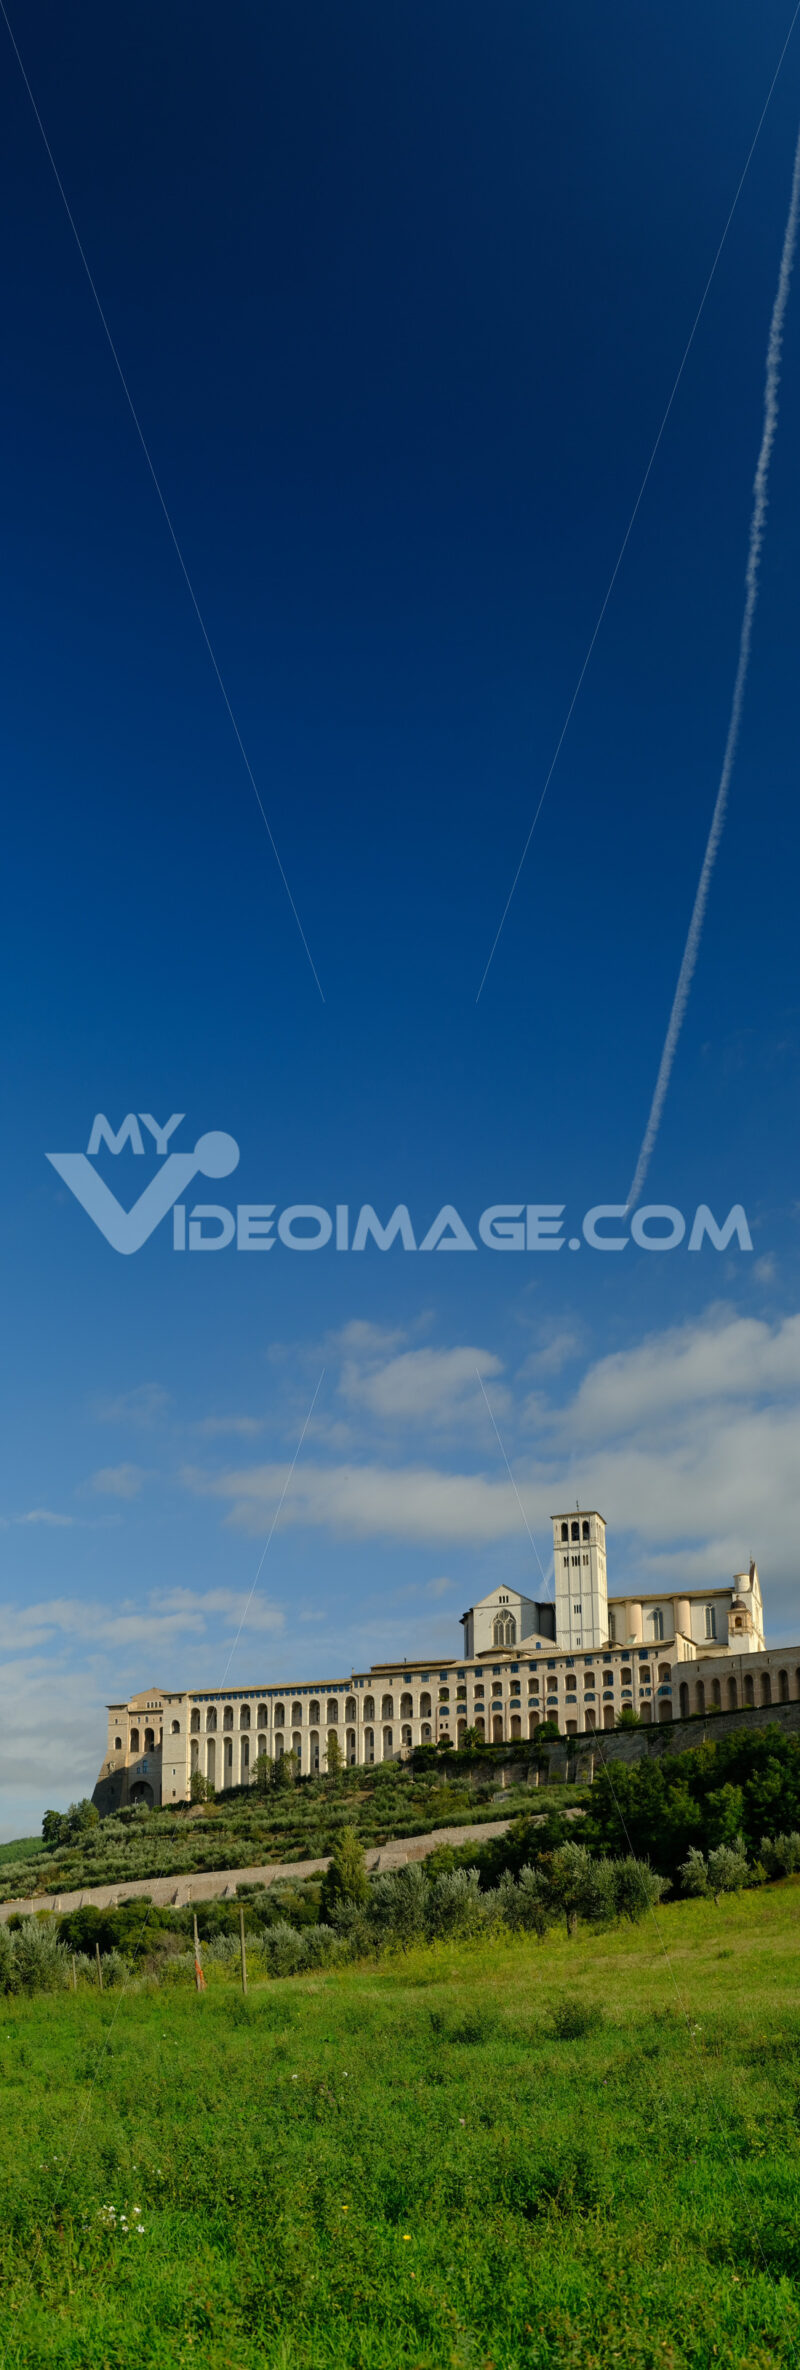 Panoramic photo of the convent and church of San Francesco in Assisi. The architecture immersed in the countryside with cultivation of olive trees. - MyVideoimage.com | Foto stock & Video footage